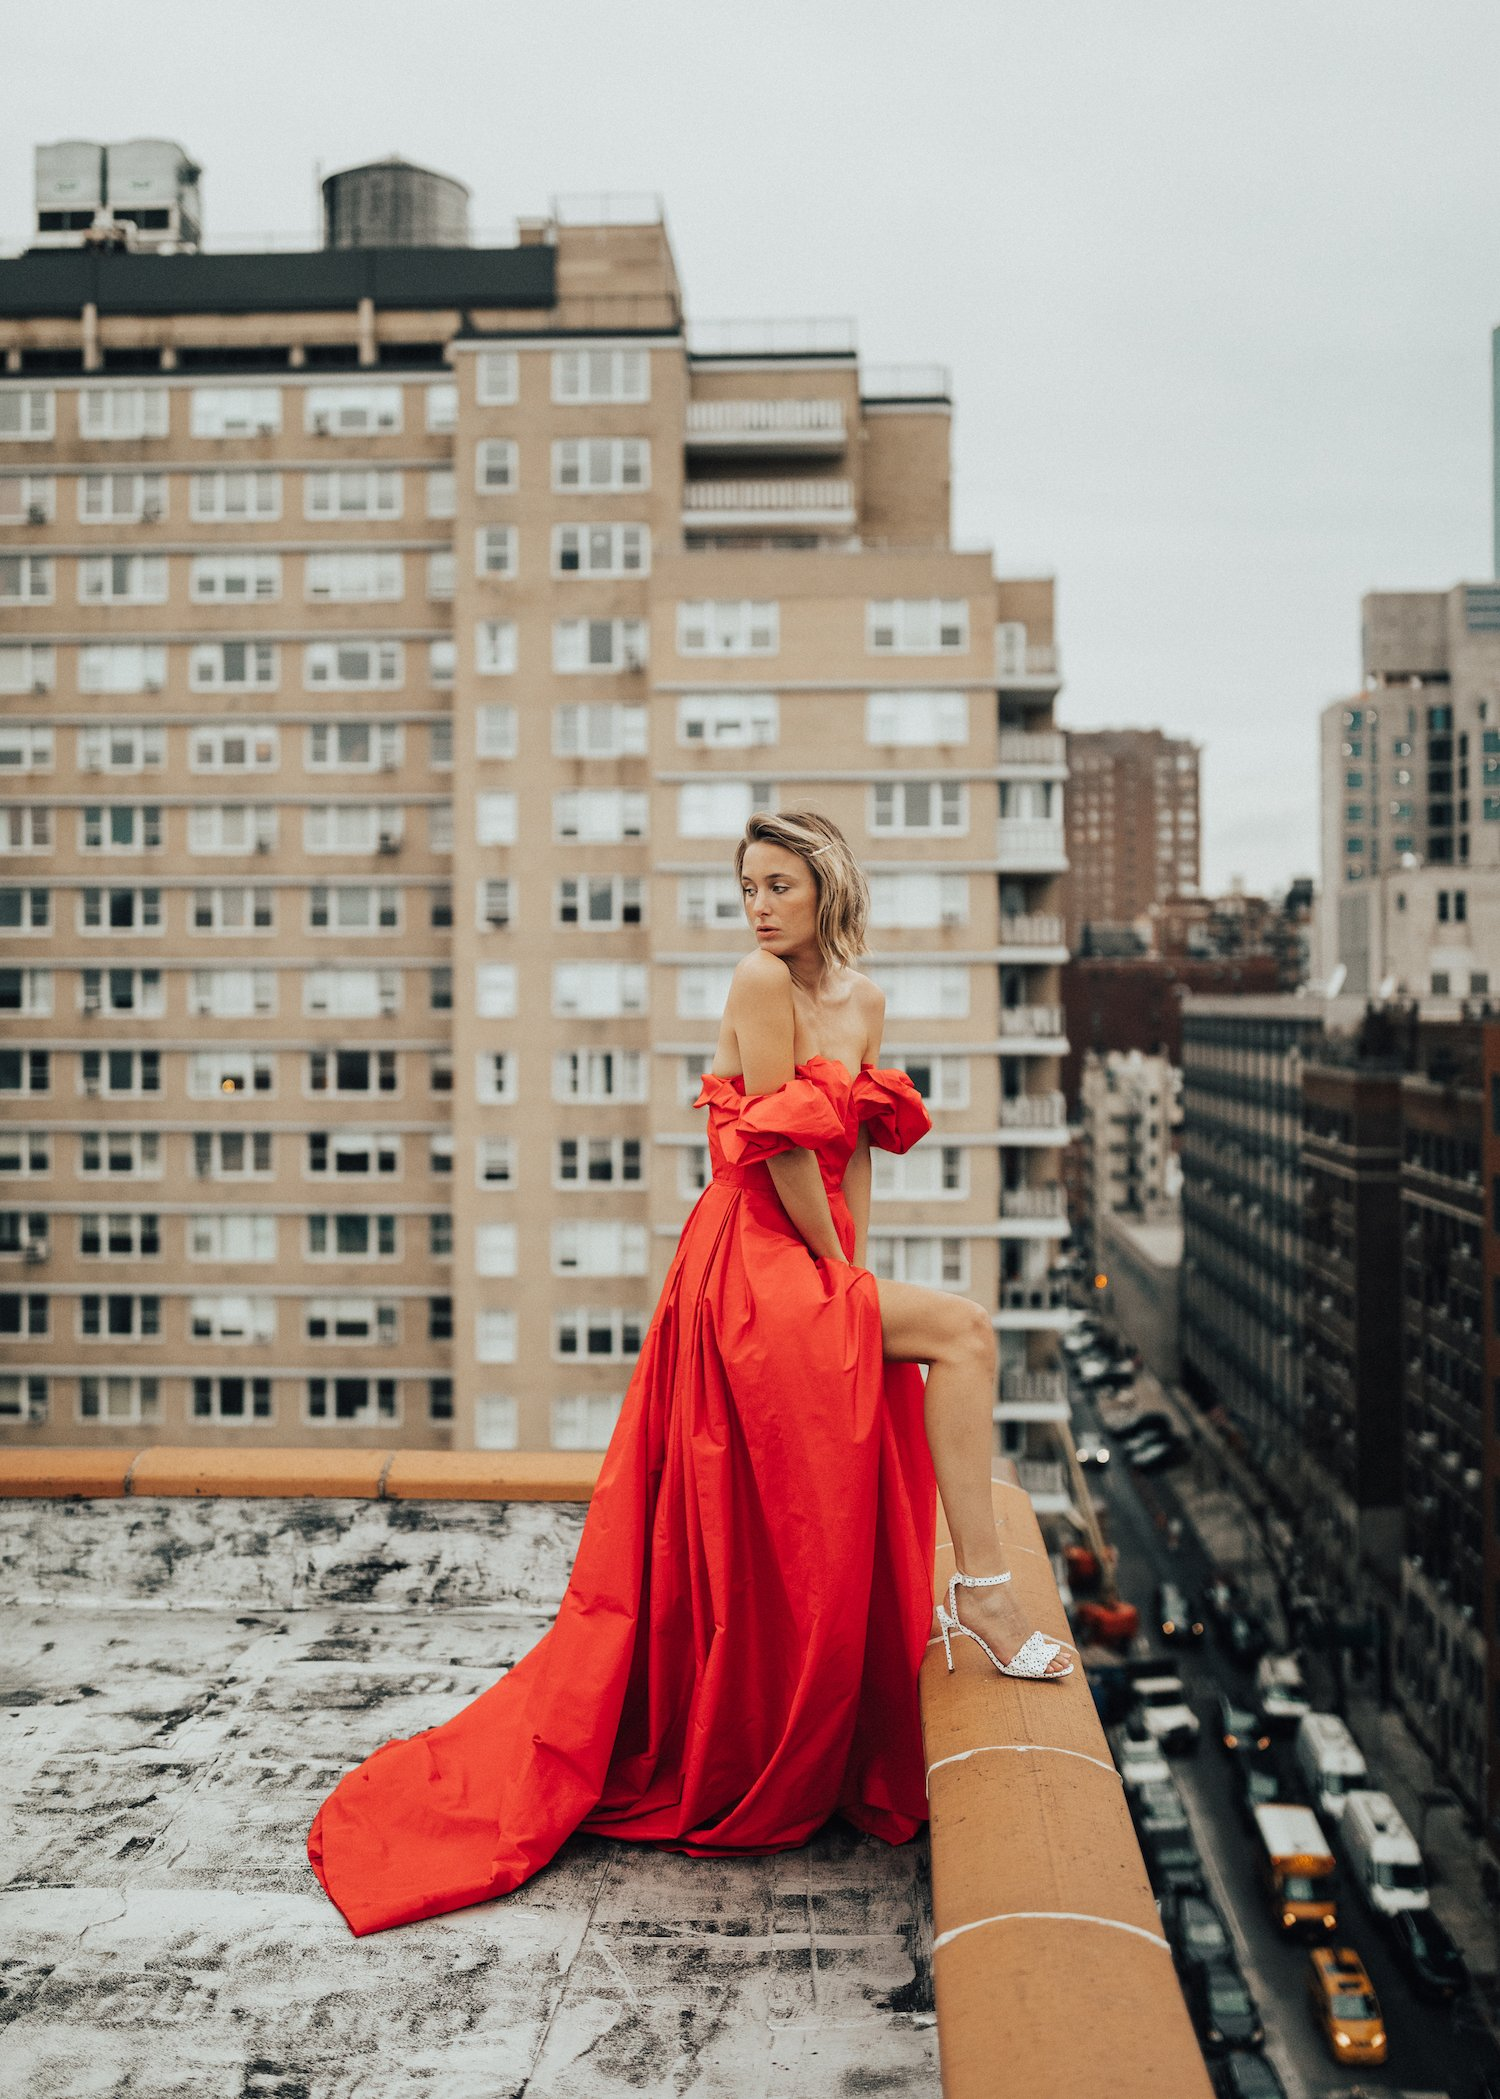 CAROLINA HERRERA RED DRESS NEW YORK